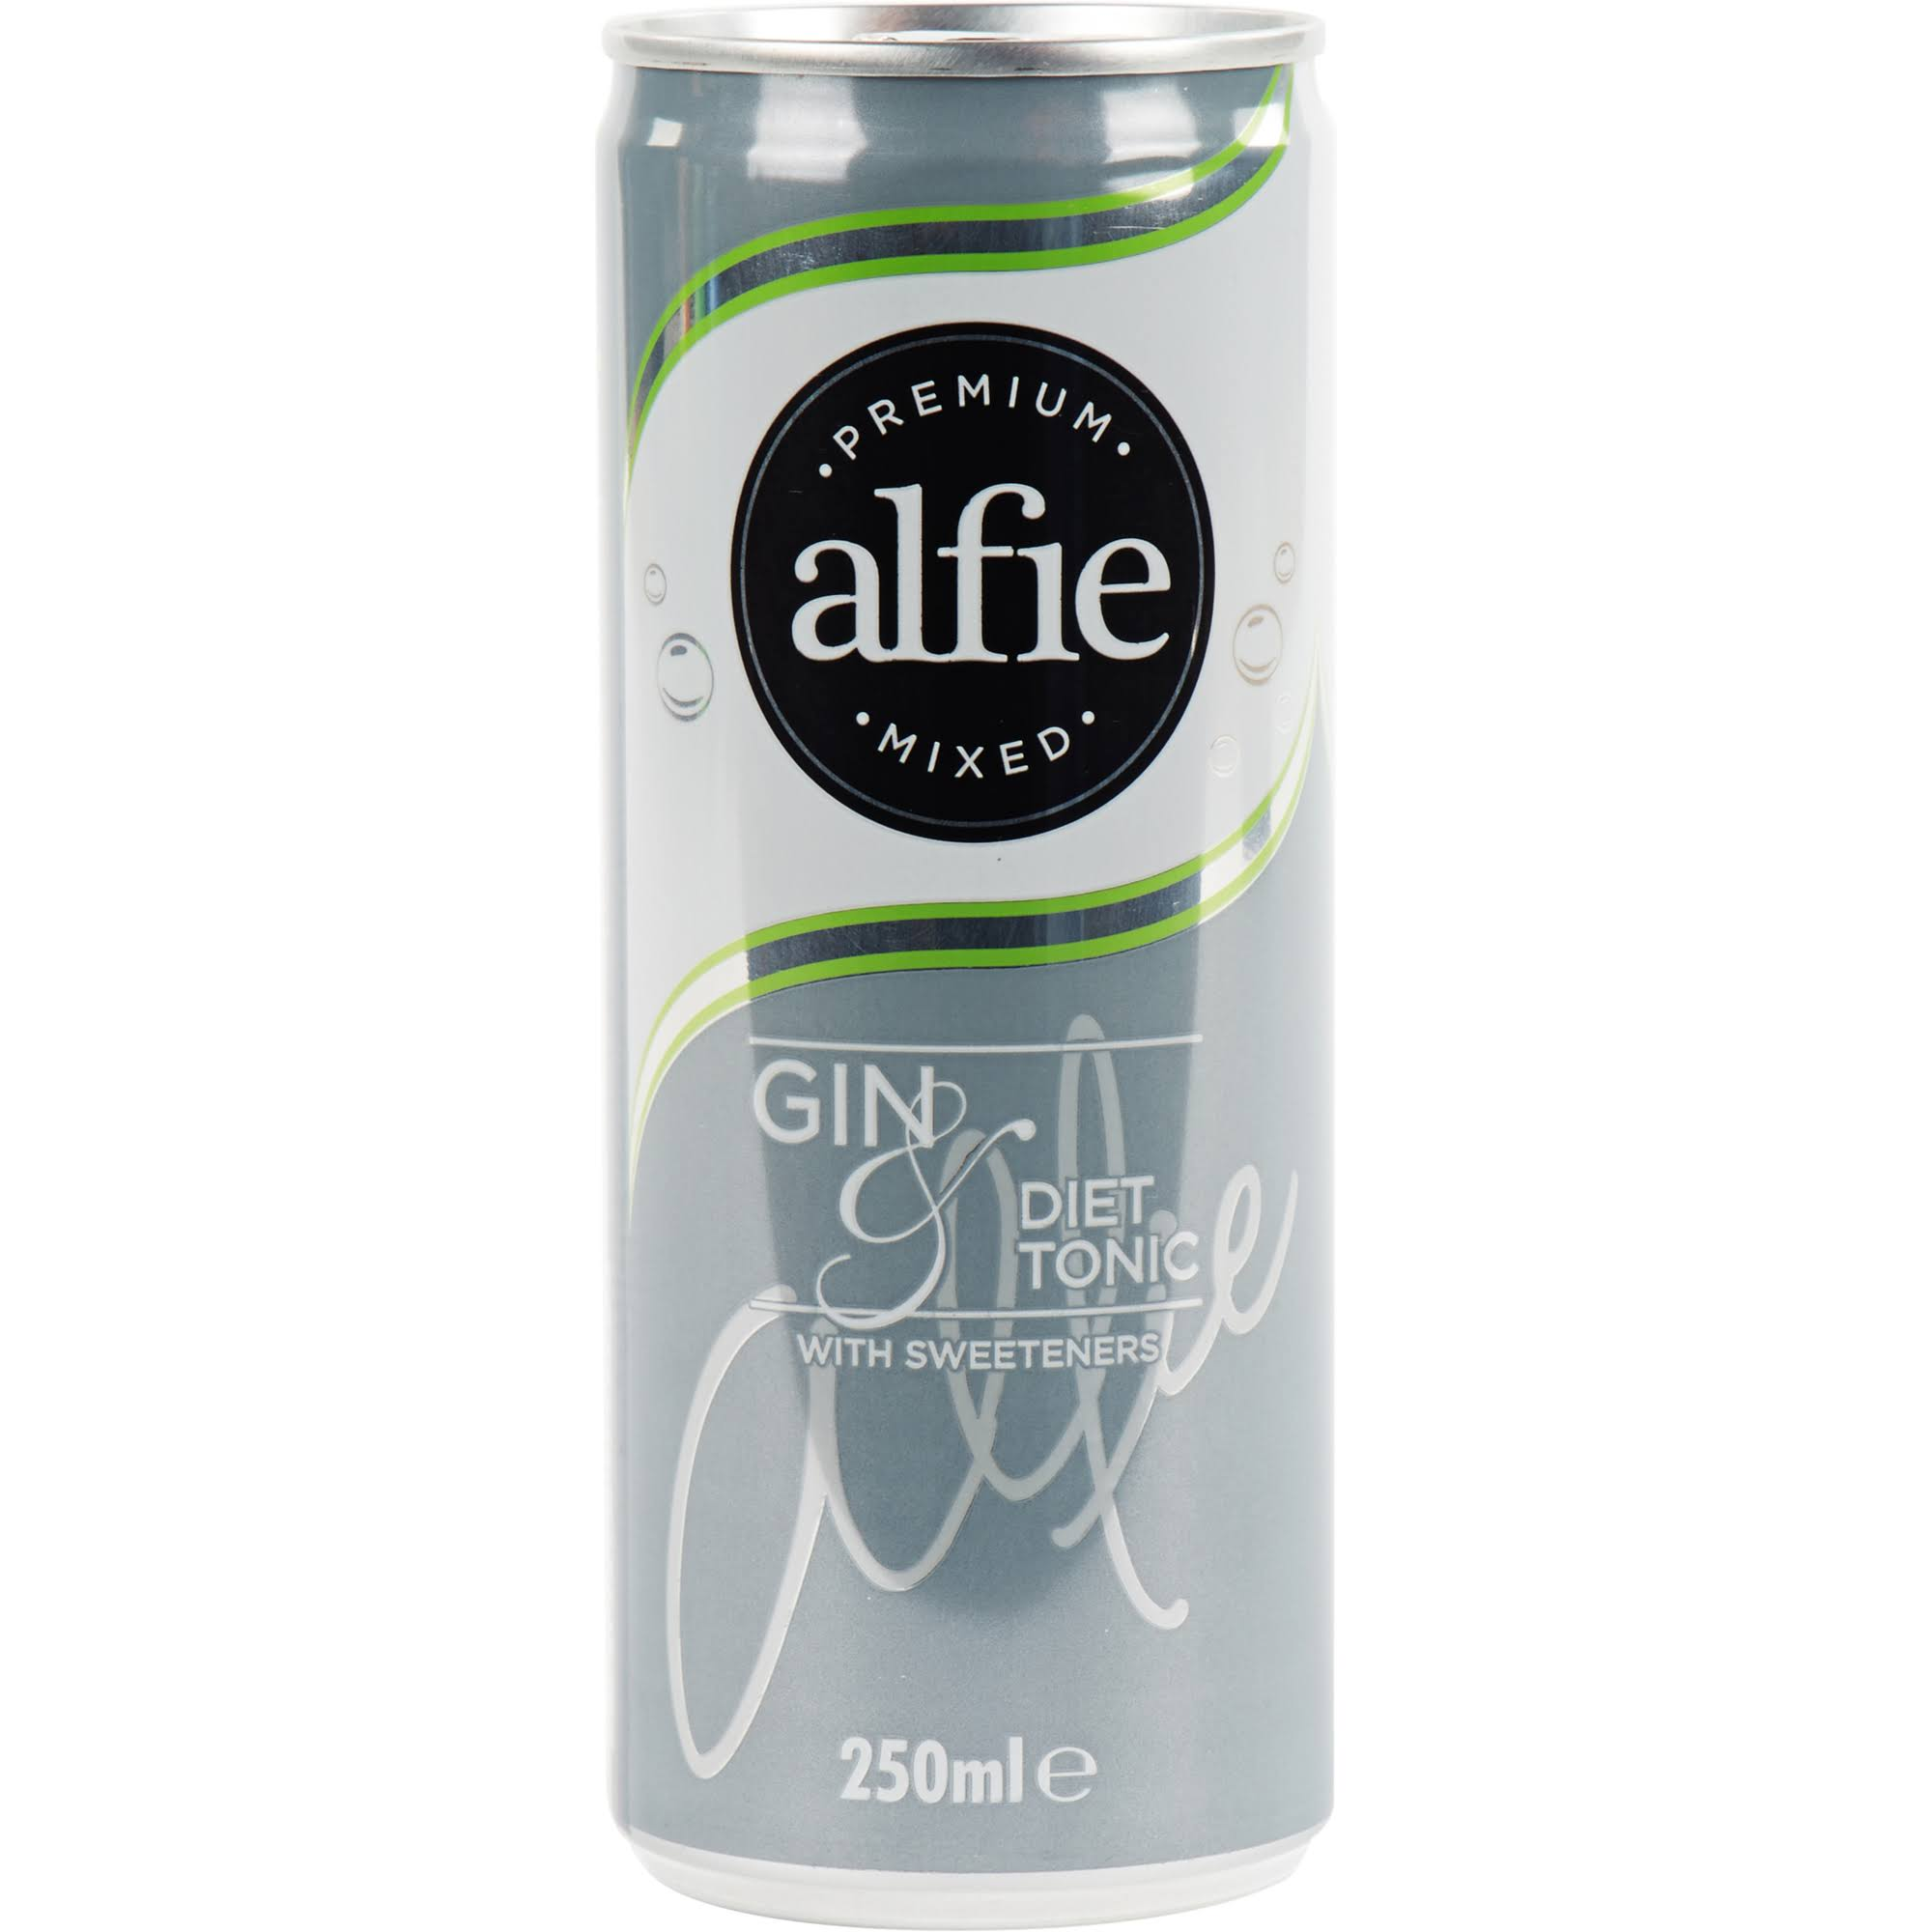 Alfie Premium Mixed Gin and Diet Tonic with Sweeteners Liqueurs - 250ml